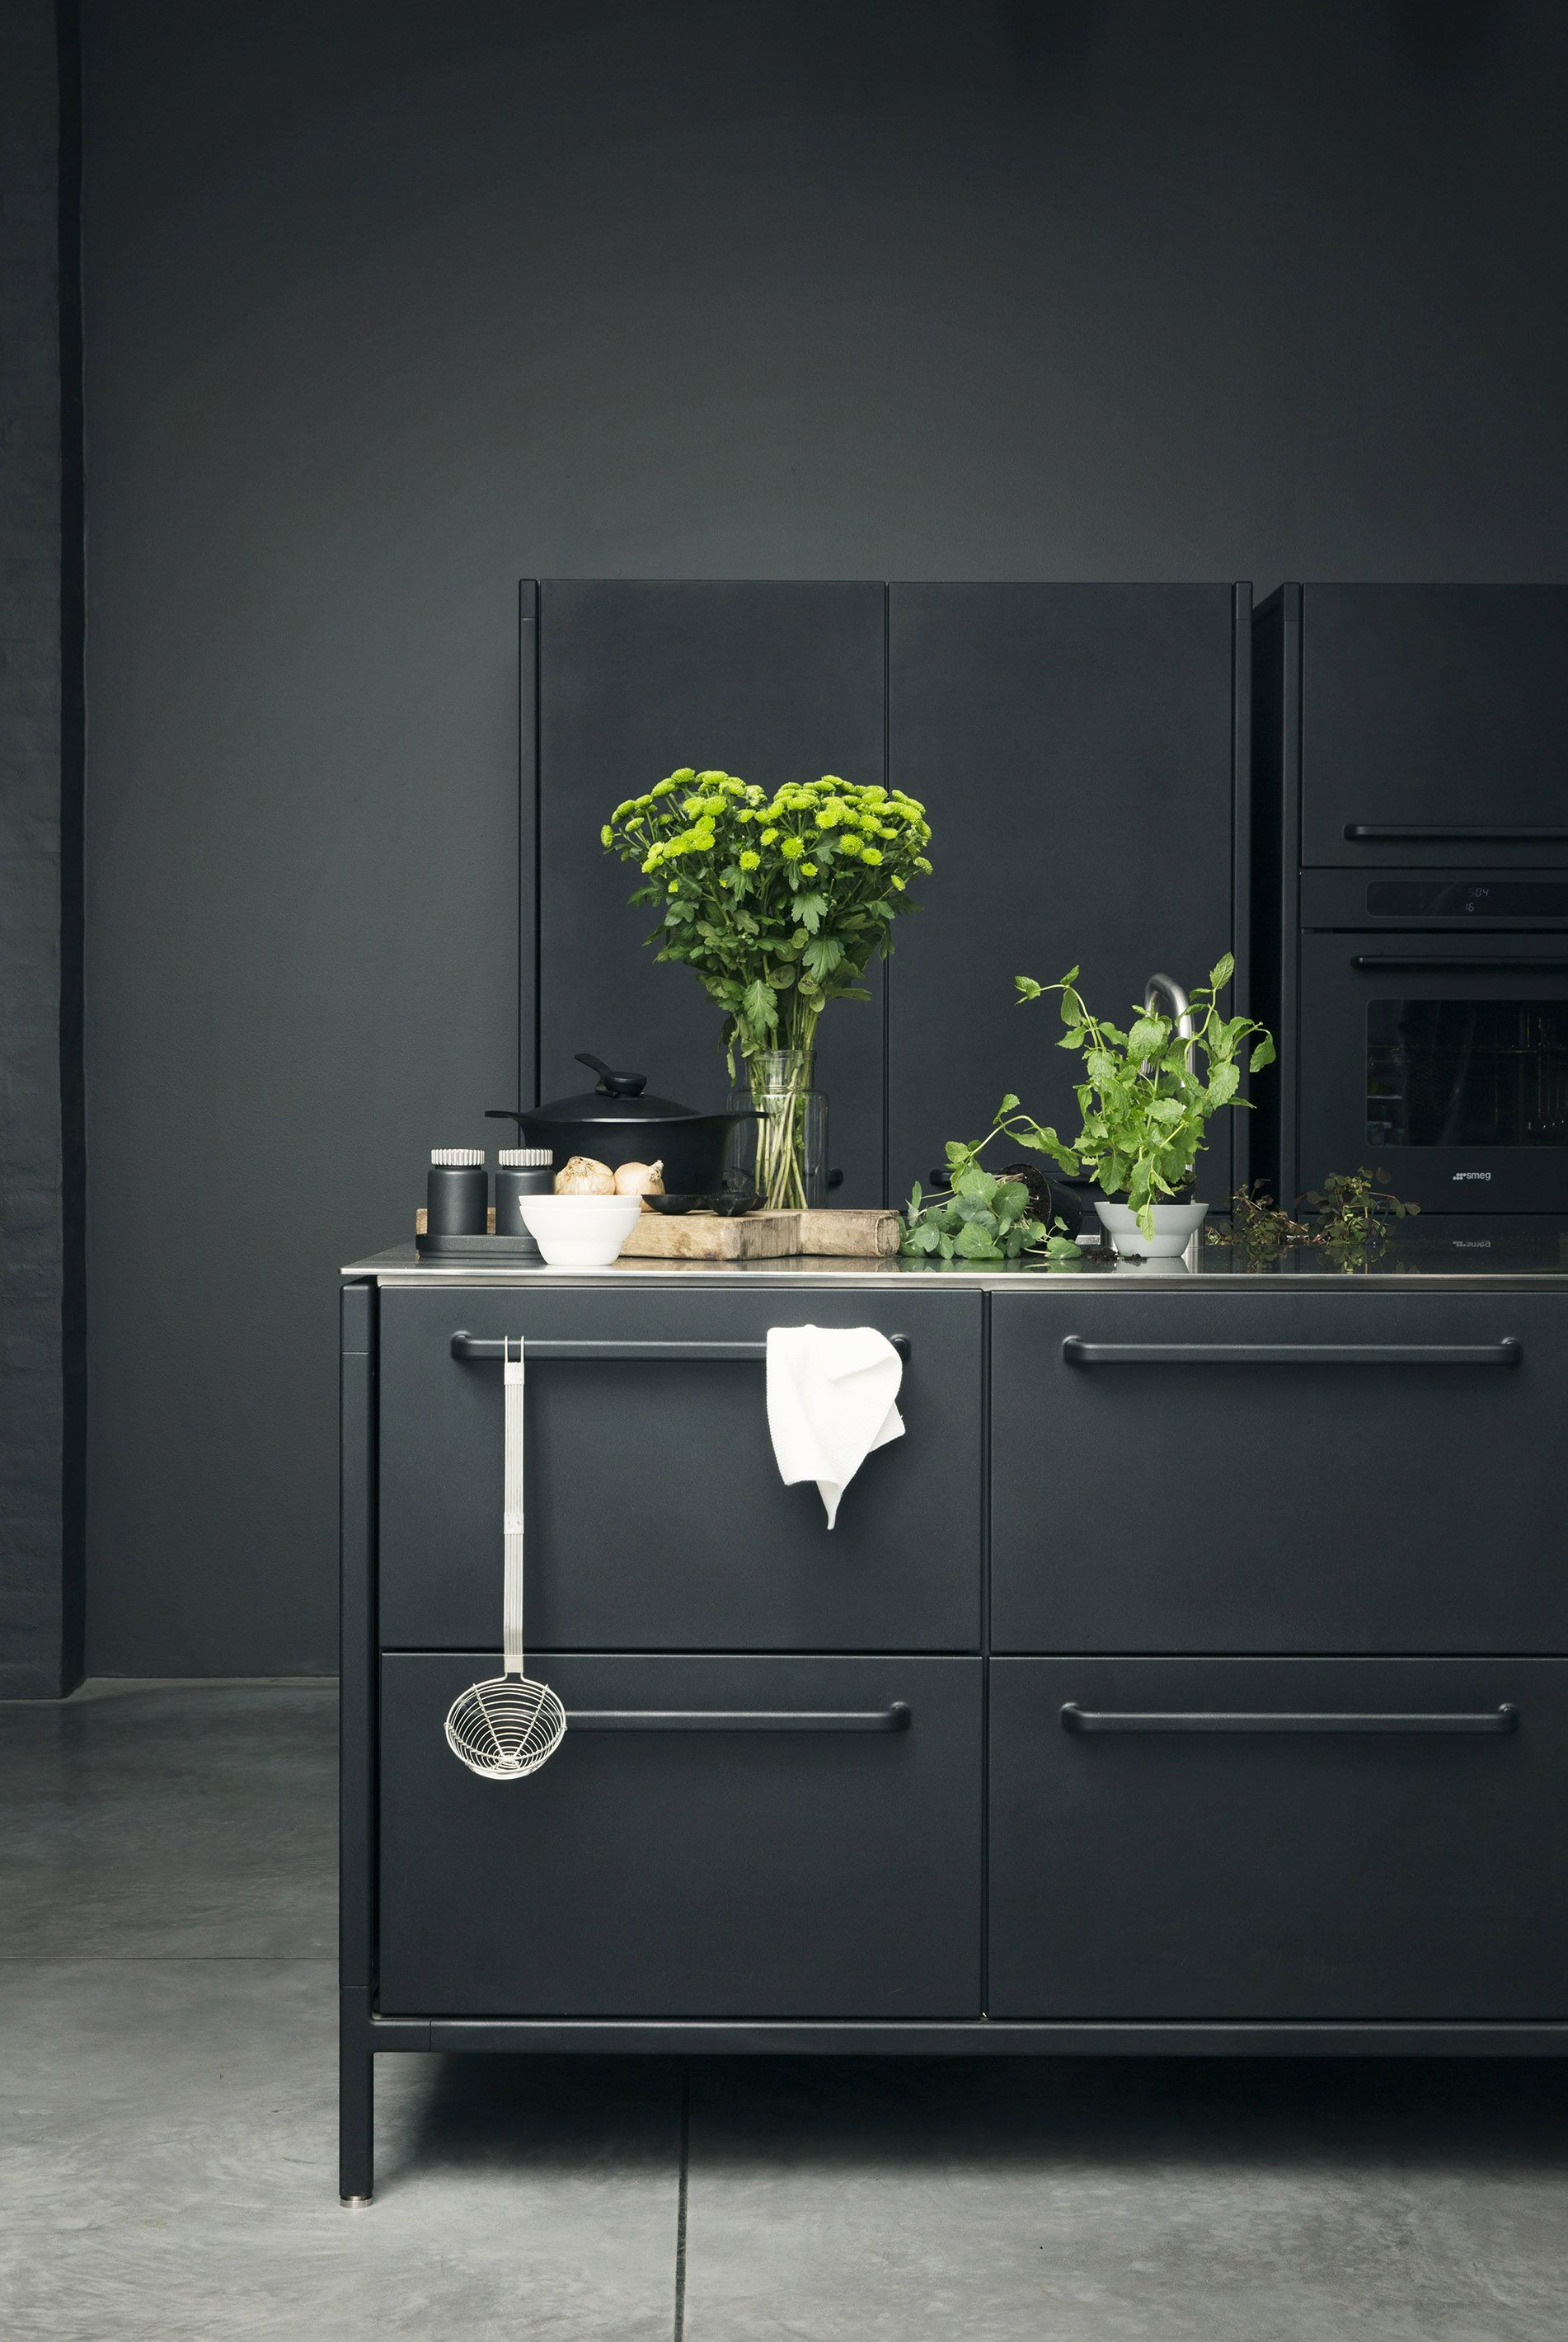 Vipp Flower Styling Event Home Decor Decor Black Kitchens